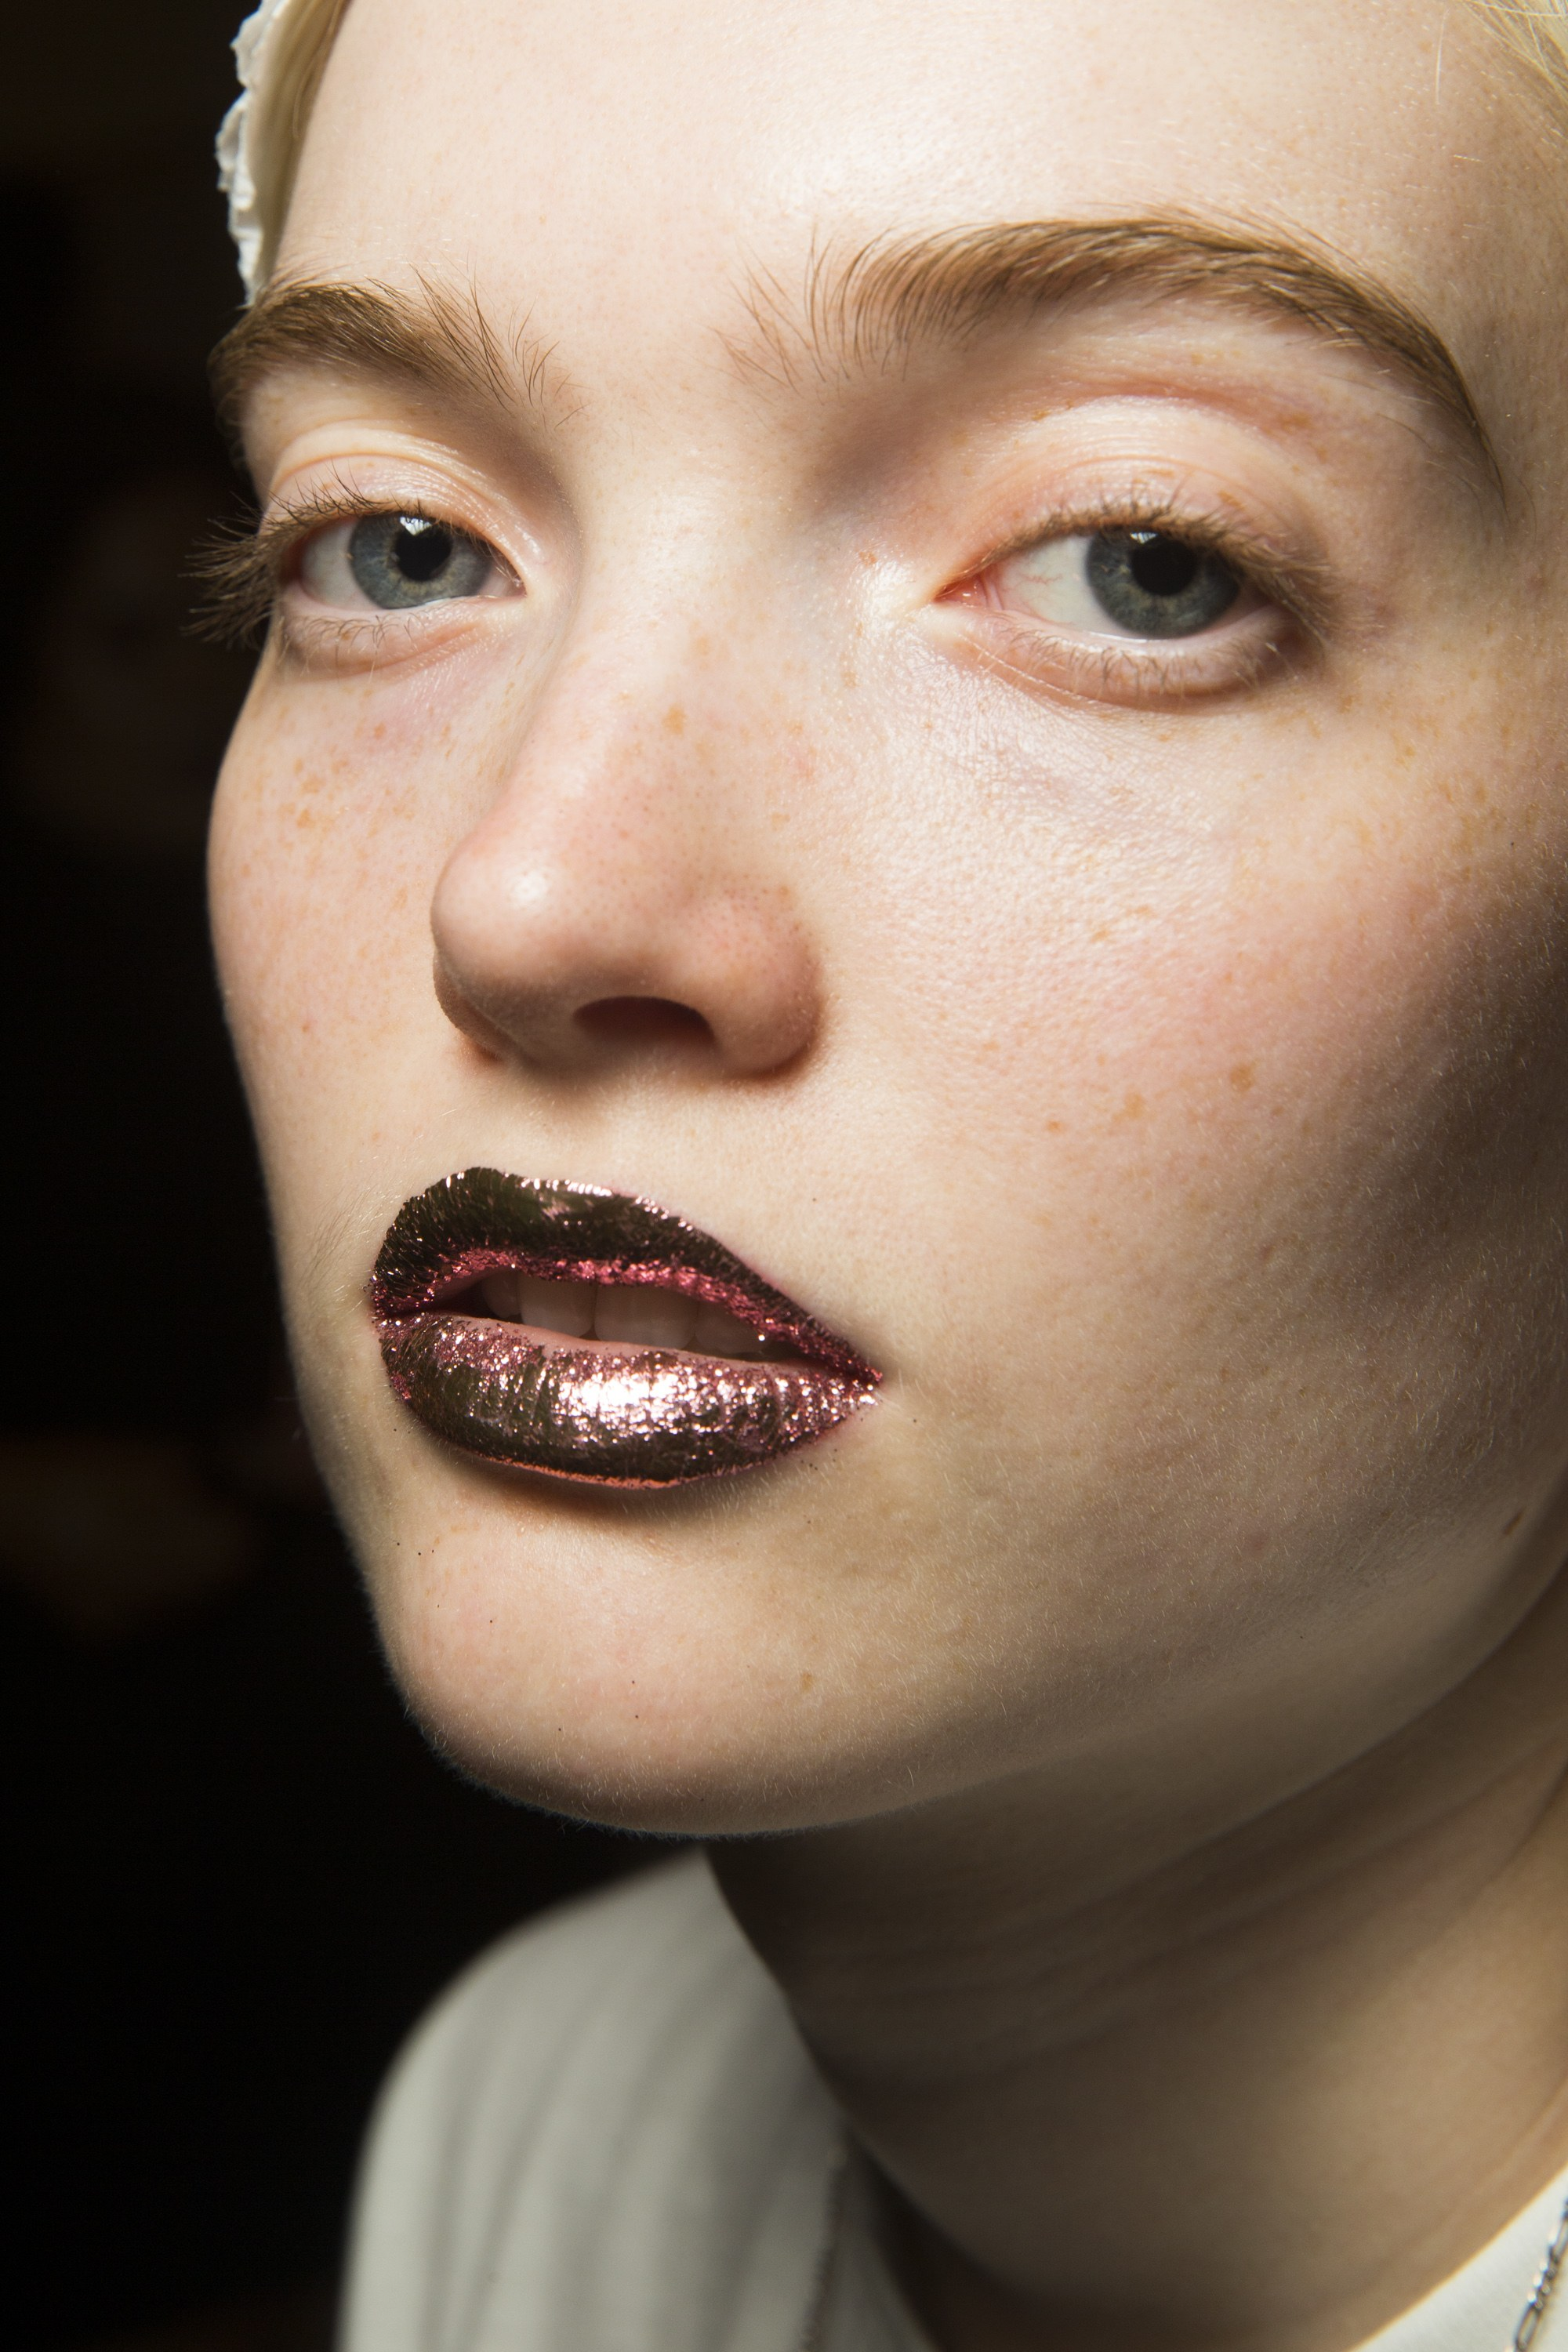 jeremy-scott-glitter-lips-spring-summer-2019-collection